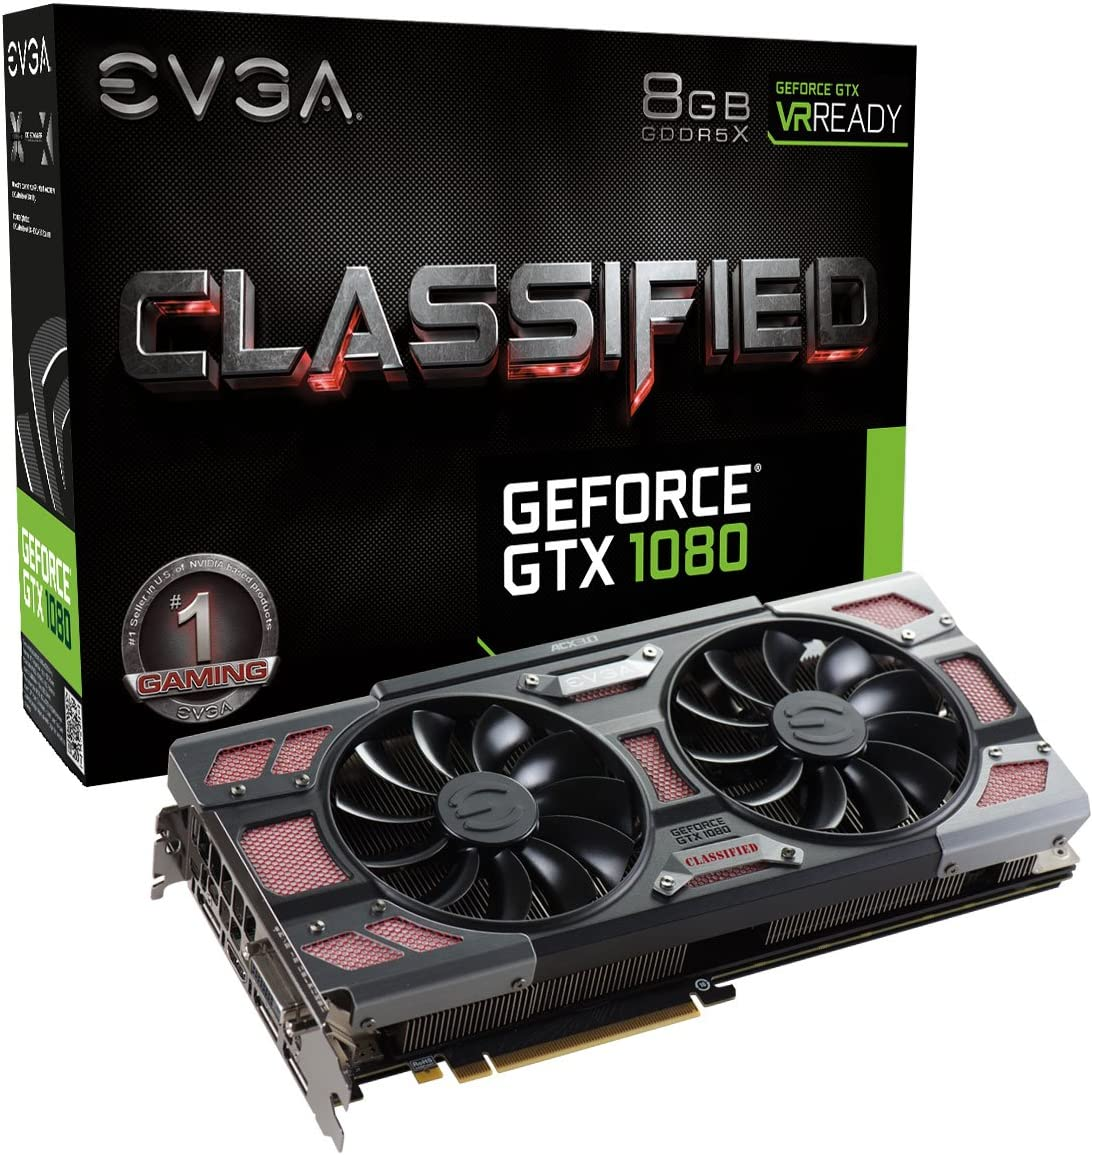 EVGA GeForce GTX 1080 CLASSIFIED GAMING ACX 3.0, 8GB GDDRX, RGB LED, 10CM FAN, 14 Power Phases, Double BIOS, DX12 OSD Support (PXOC) Graphics Card (08G-P4-6386-KR)